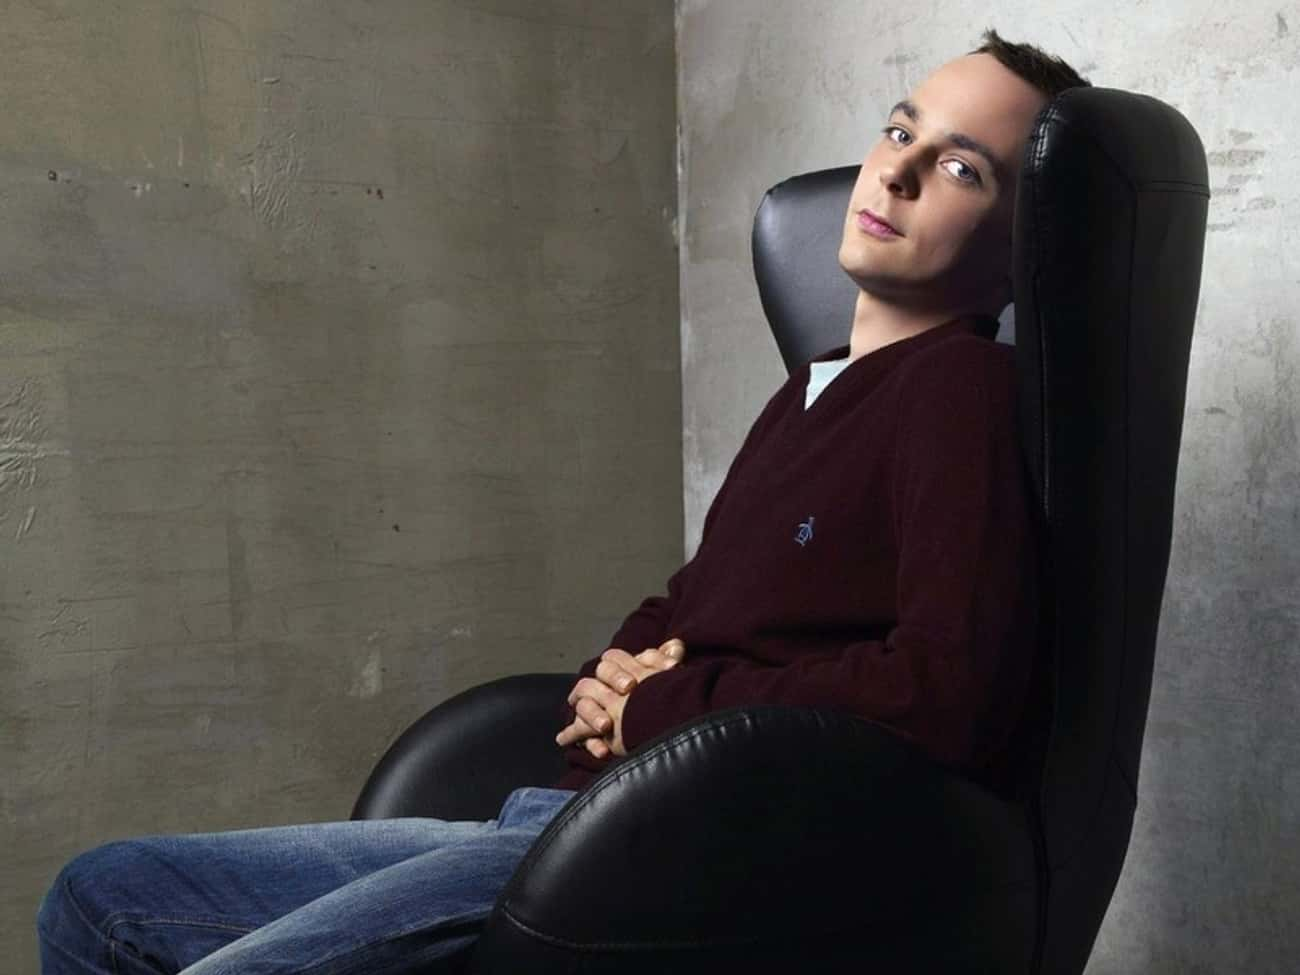 Jim Parsons in Maroon Cotton S is listed (or ranked) 2 on the list Hot Jim Parsons Photos